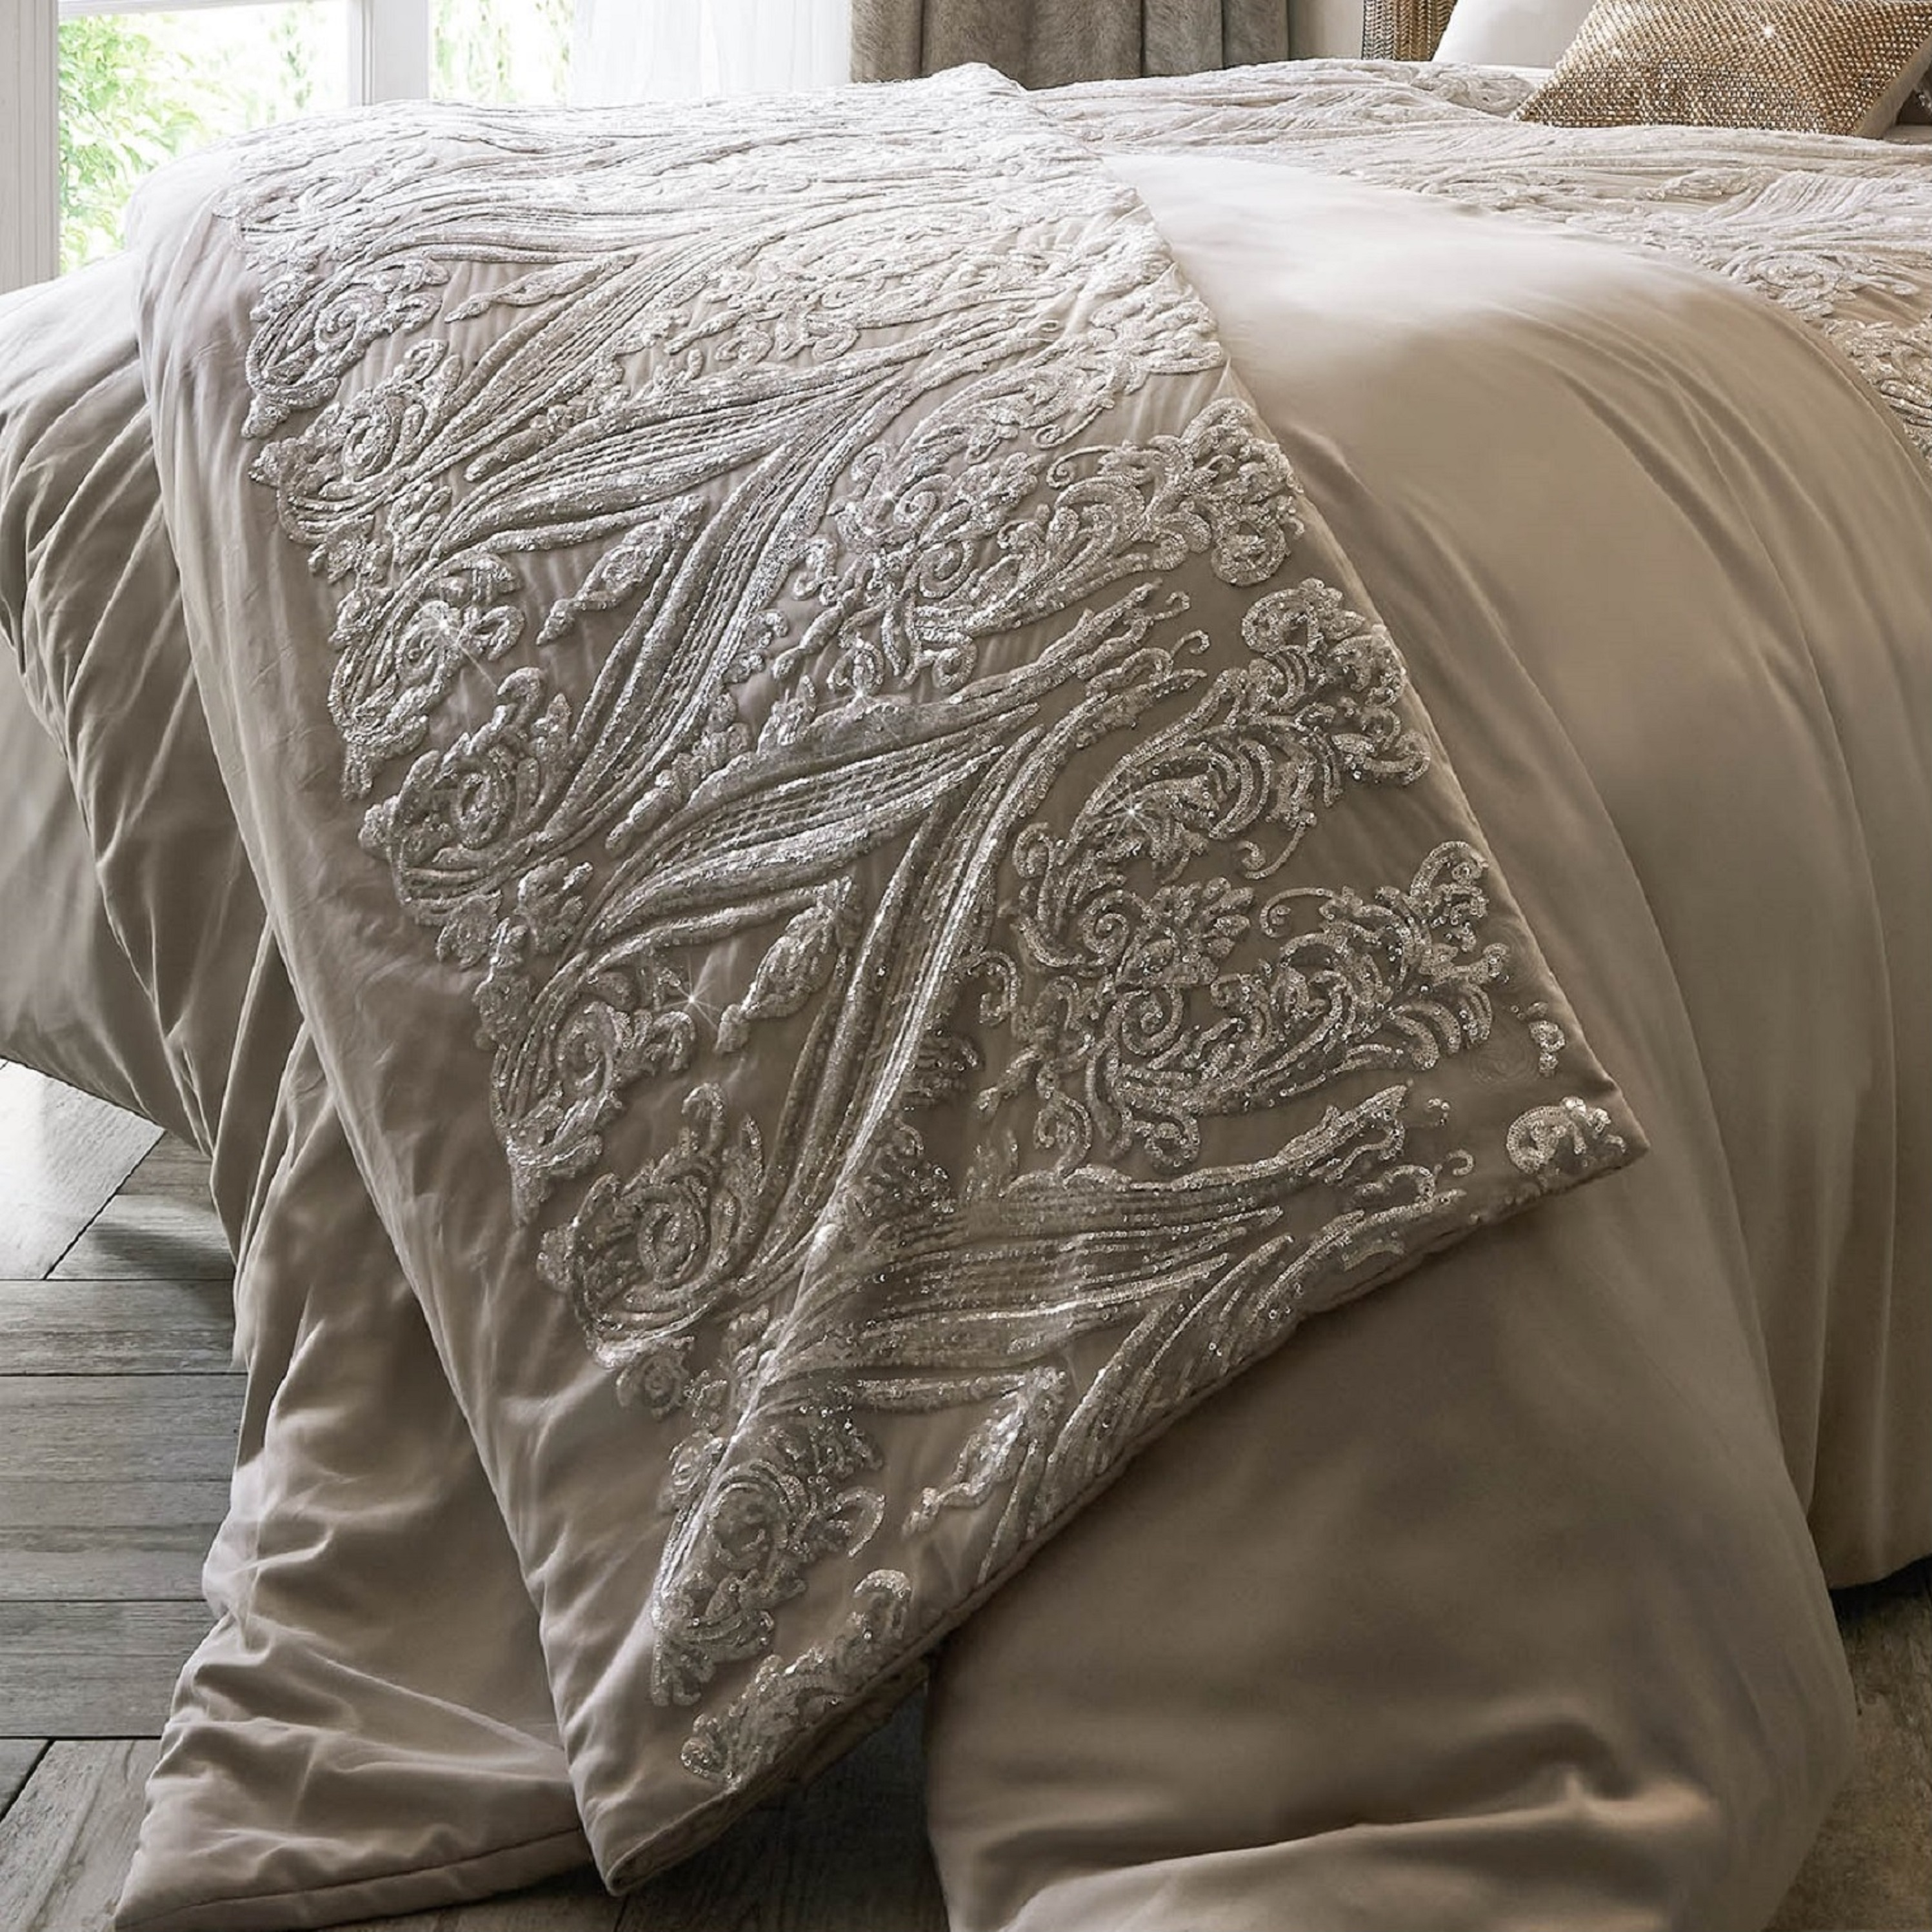 Savoy Blush Bedding By Kylie Minogue At Home House Of